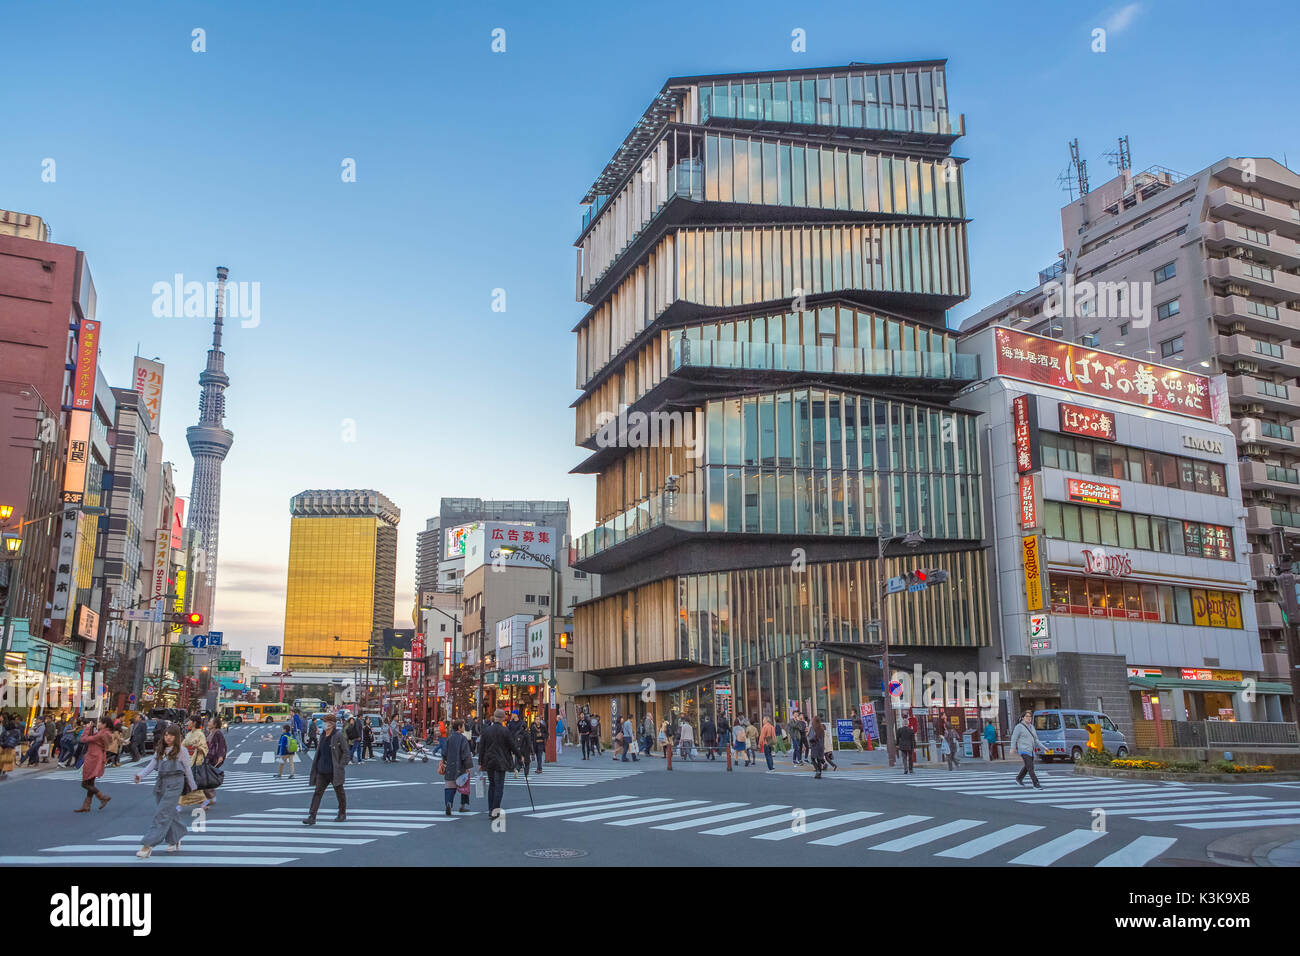 Japan, Tokyo City, Asakusa District, Asakusa Culture Information Center Bldg., Sky Tree Tower. - Stock Image